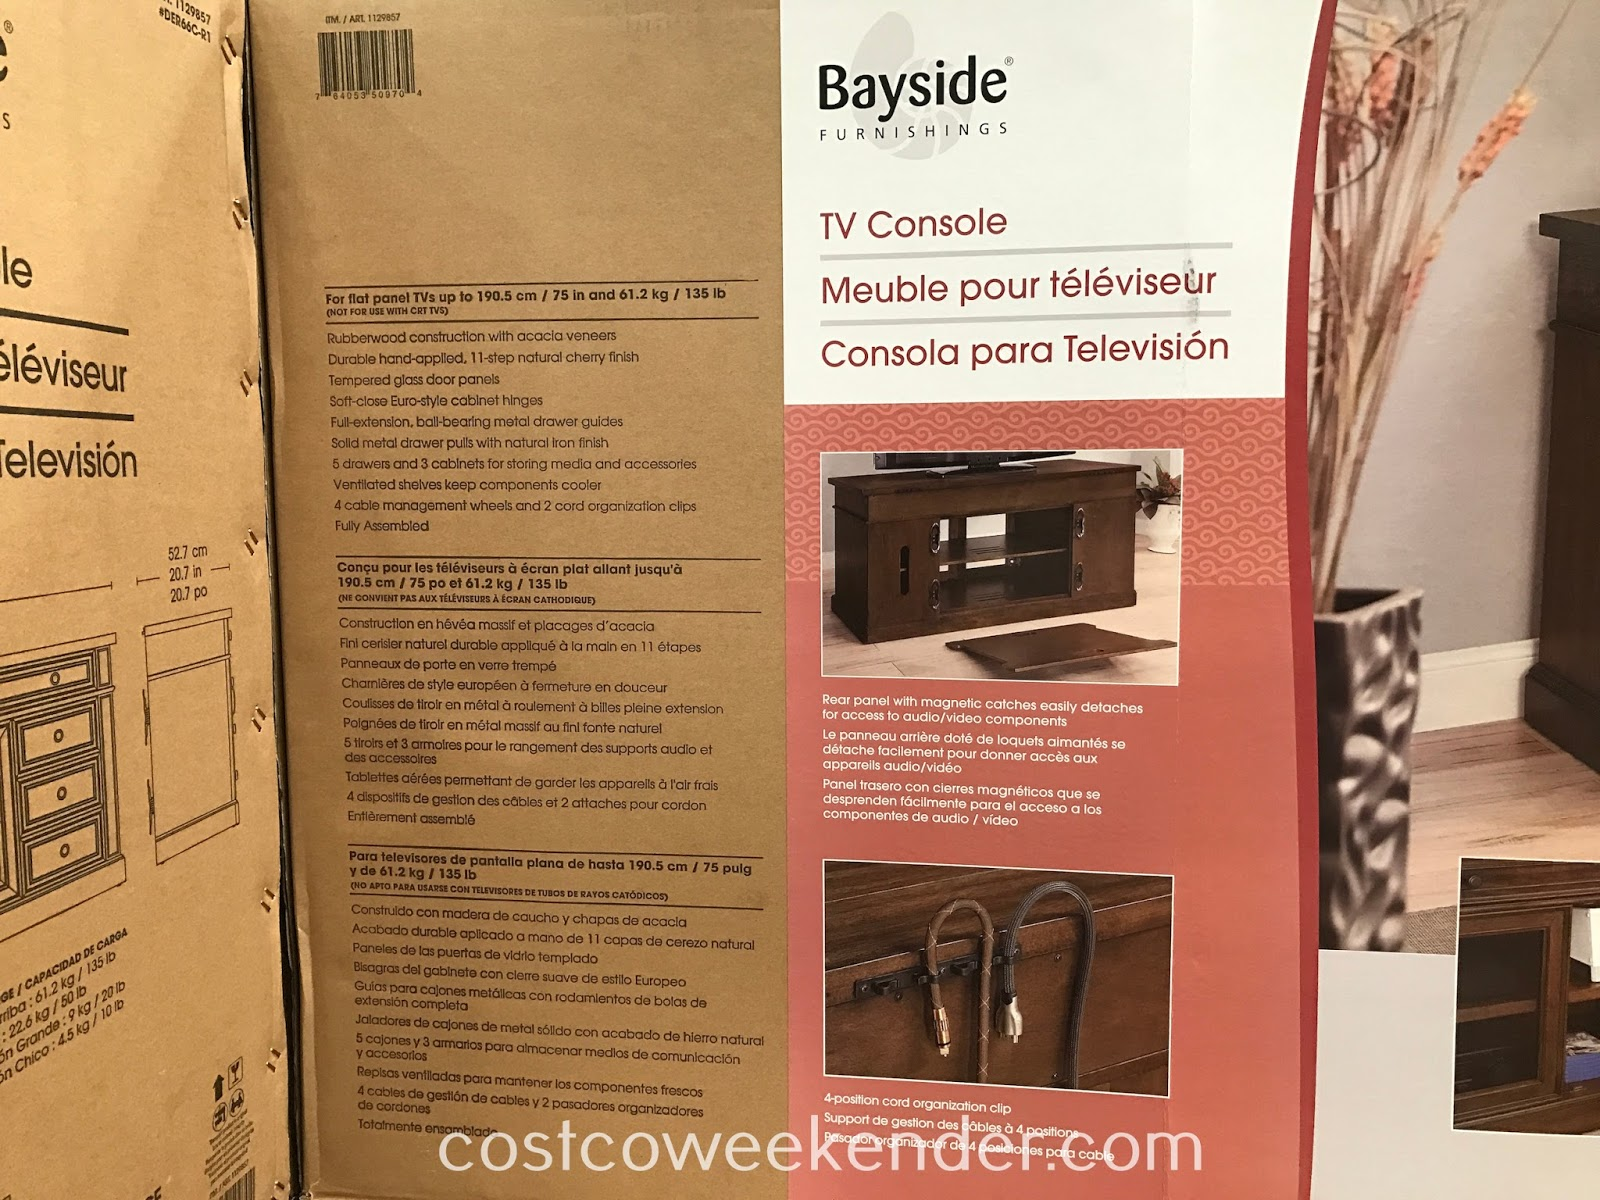 Bayside Furnishings TV Console: great for any living area in your home